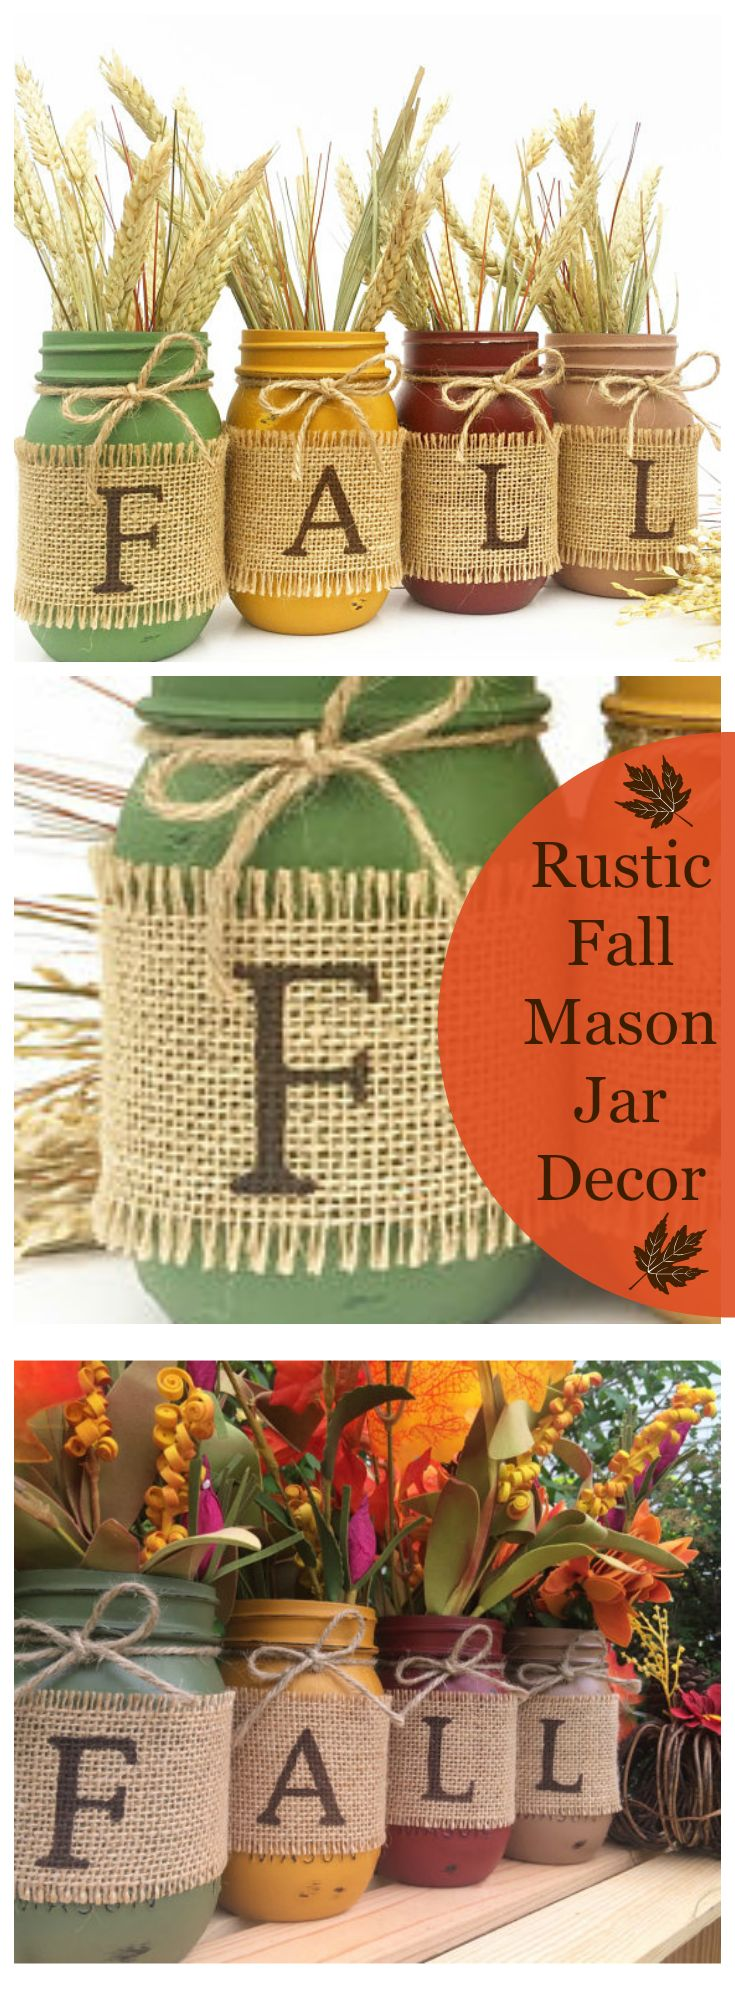 Gorgeous Rustic Autumn Decorative Set of Hand Painted Ball Mason Jars. Wrapped in burlap. Set includes 4 pint size (16 oz.) jars. Add the warmth of fall to any decorative setting. #Fall #masonjar #affiliate